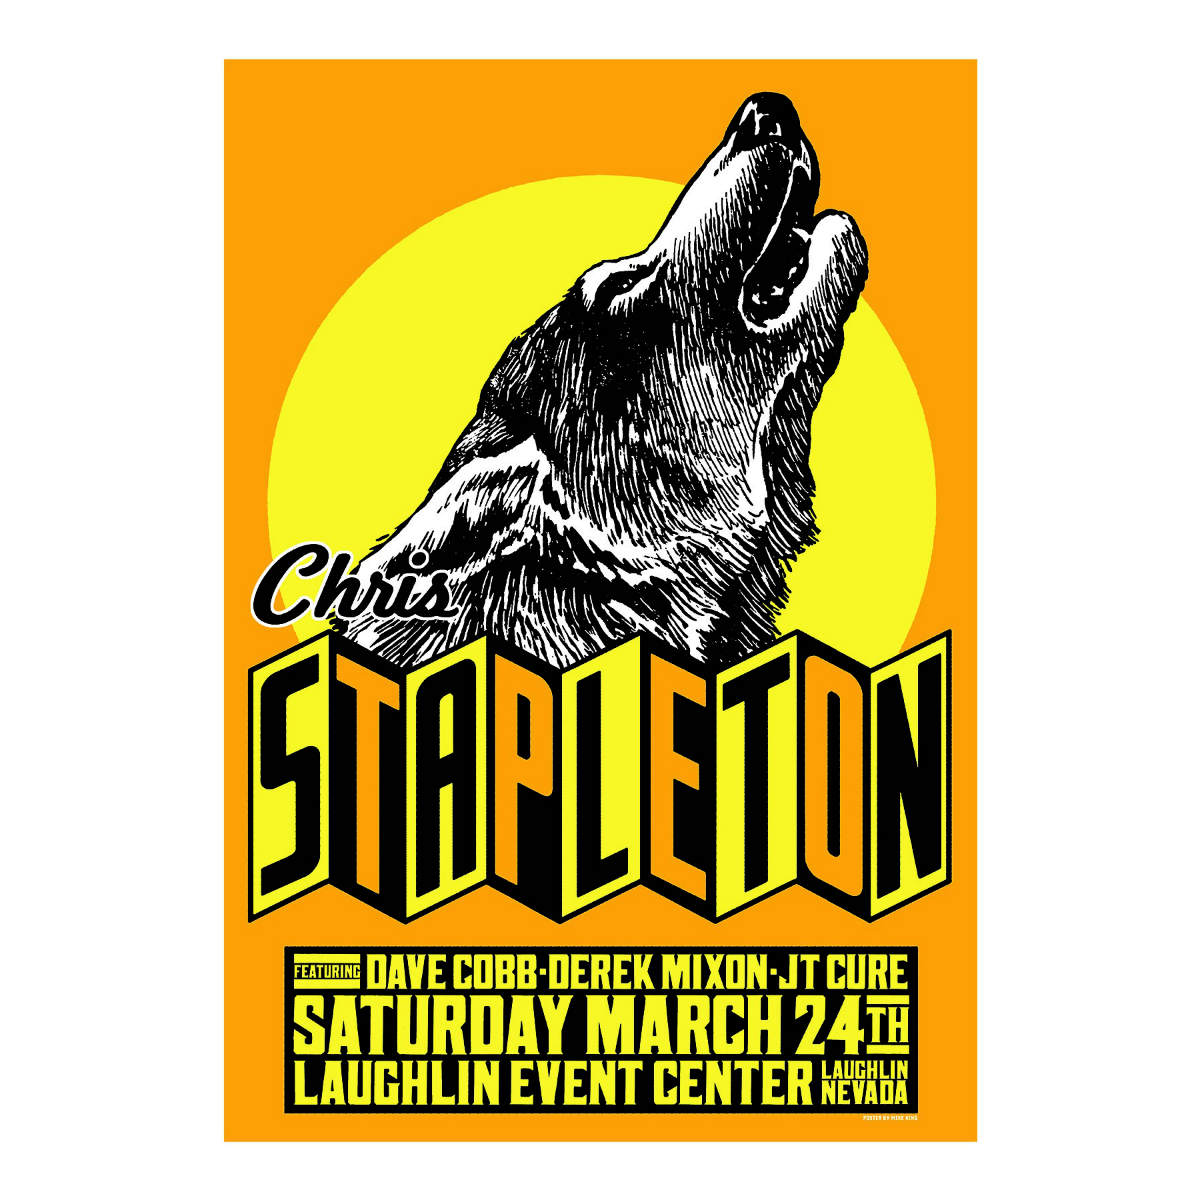 Chris Stapleton Show Poster – Laughlin, NV 3/24/18